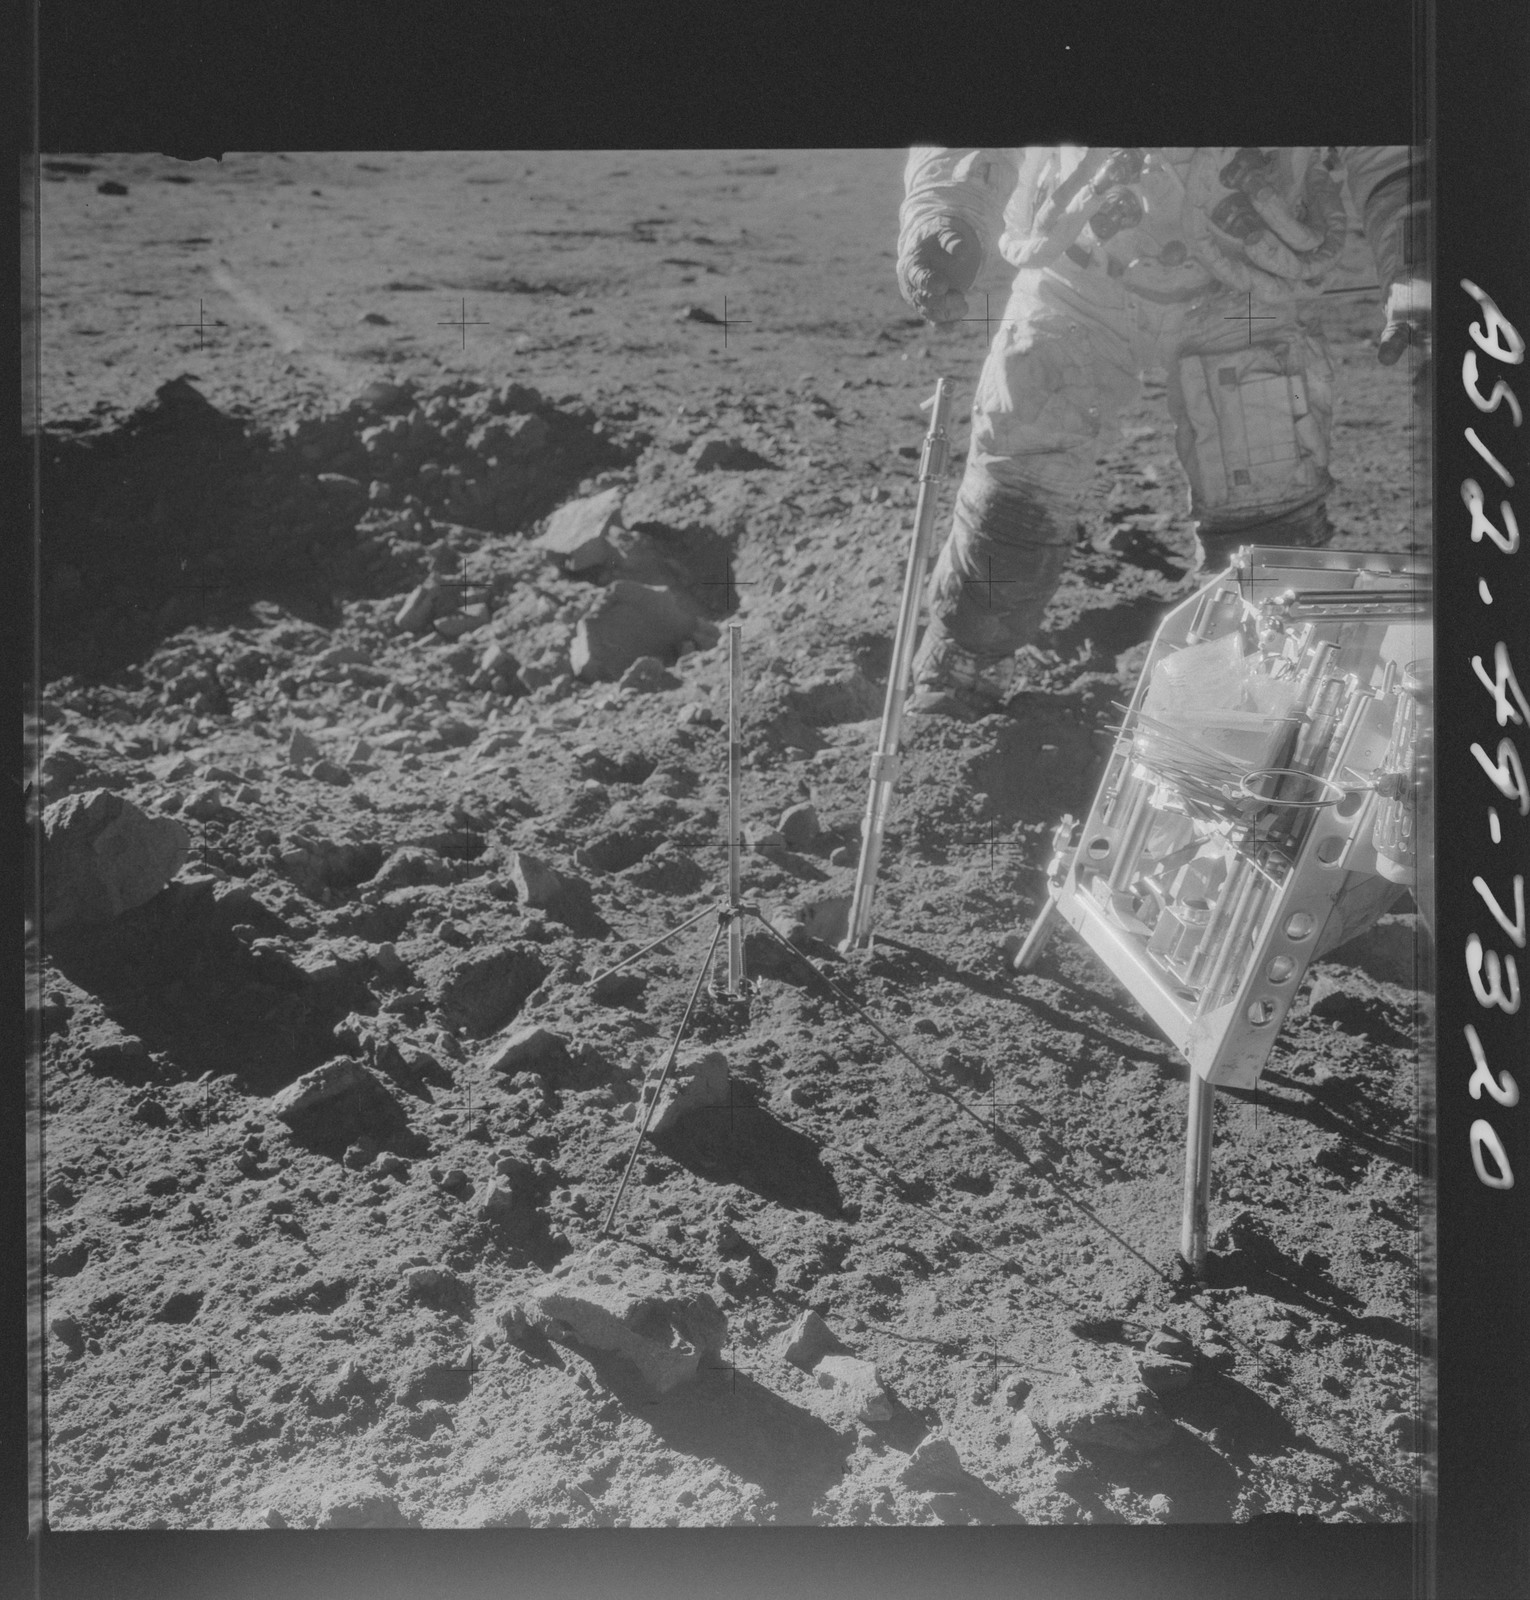 AS12-49-7320 - Apollo 12 - Apollo 12 Mission image  - Charles Conrad Jr., commander, is photographed beside the Handtool Carrier